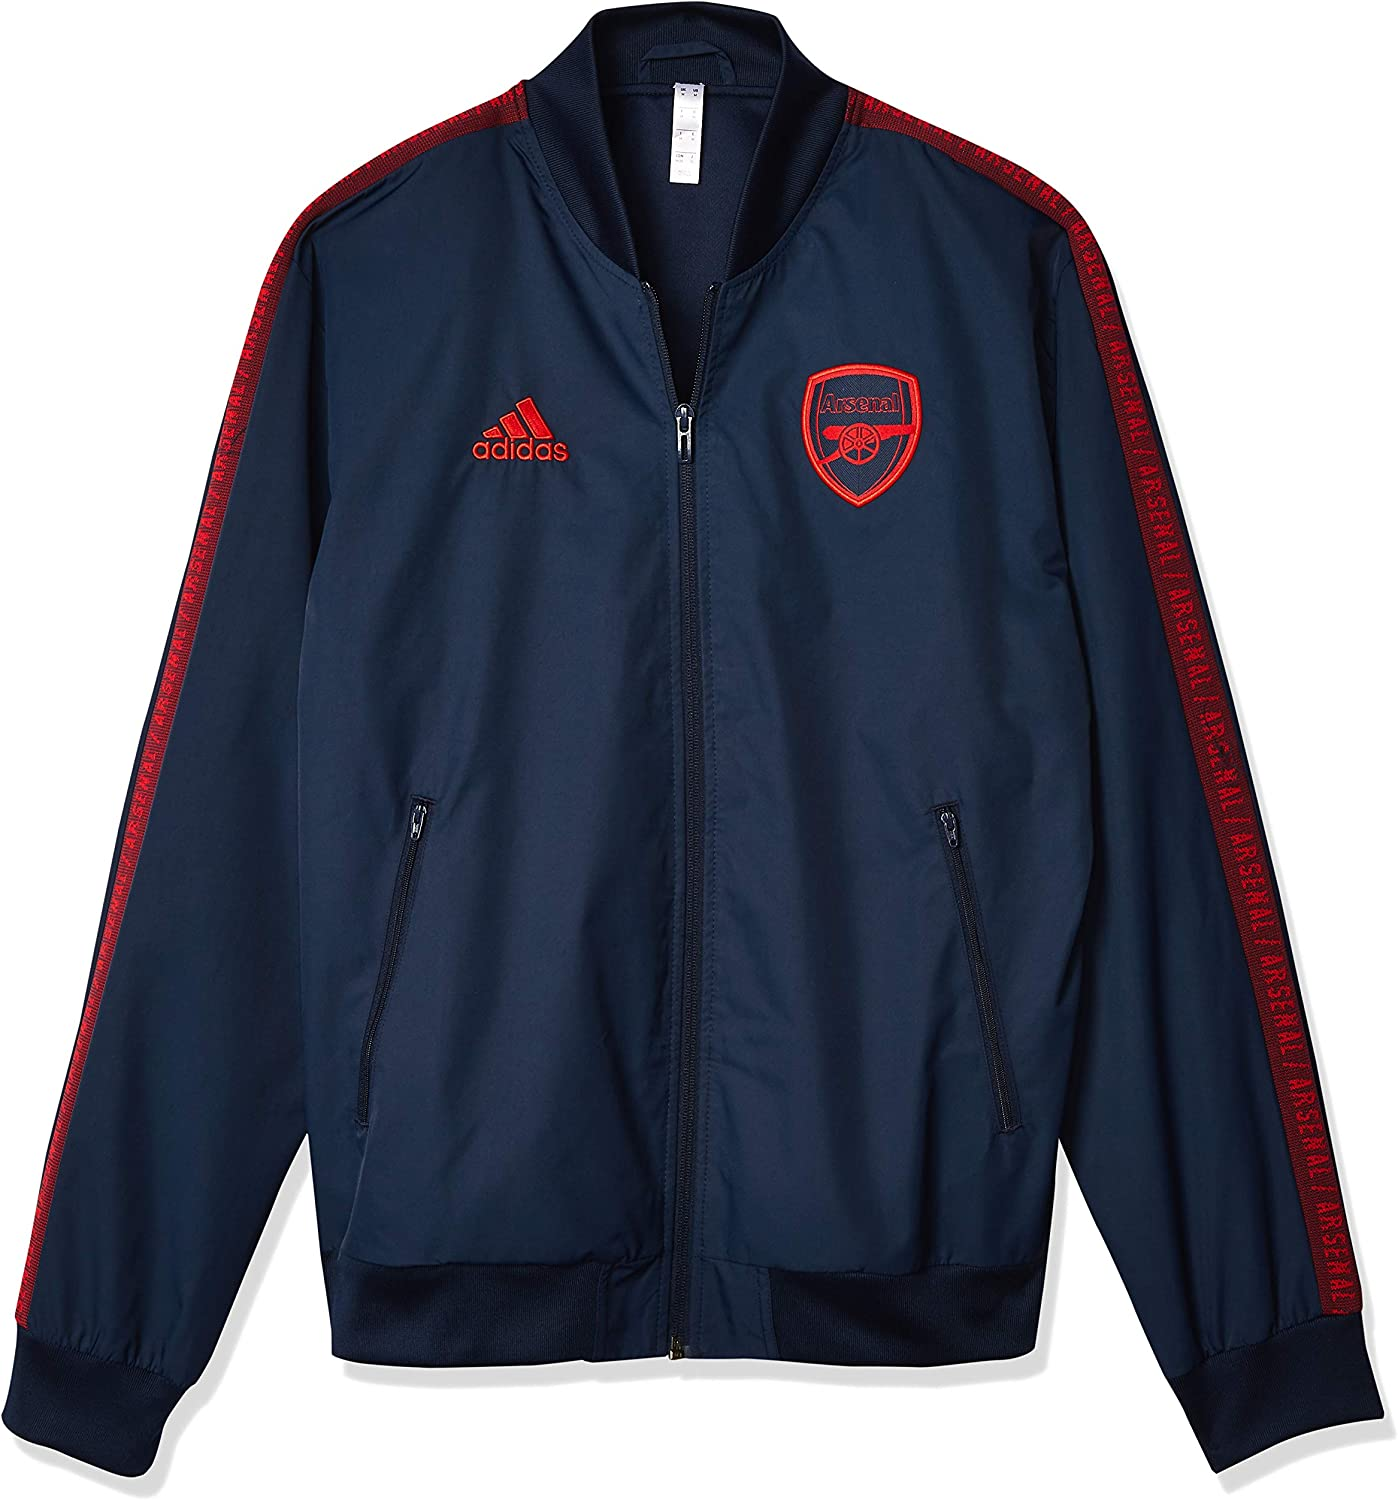 All stores are sold adidas Arsenal Anthem Blue Max 68% OFF Jacket 2019-20 S